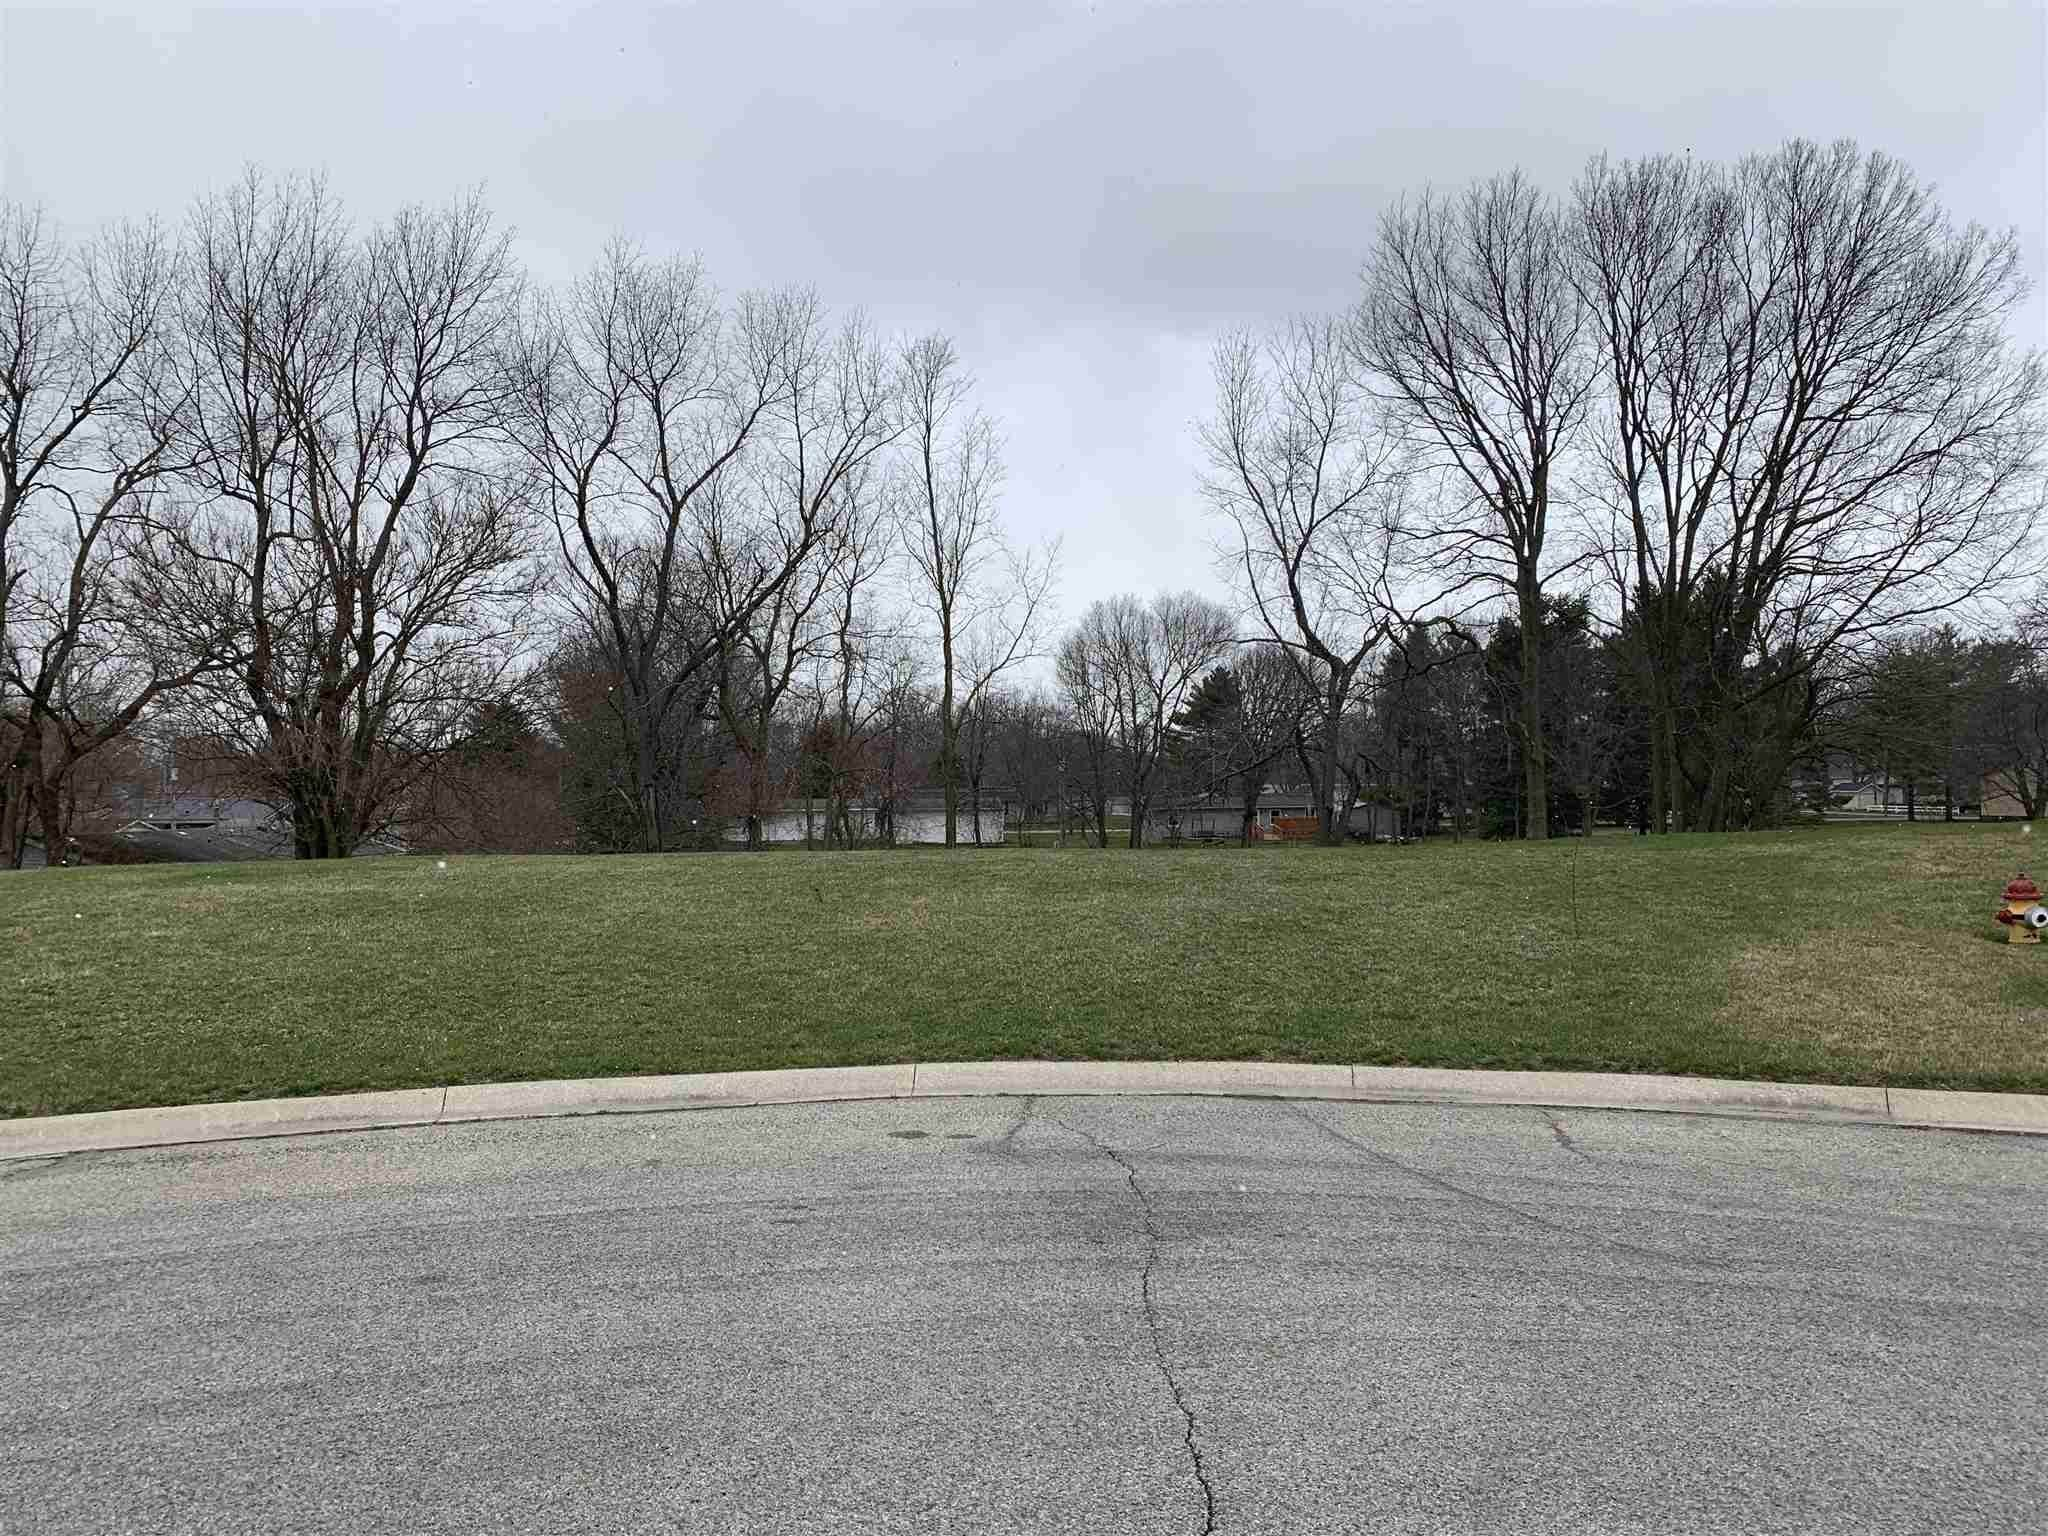 Residential Lots & Land for Sale at 804 Willow Cove South Whitley, Indiana 46787 United States